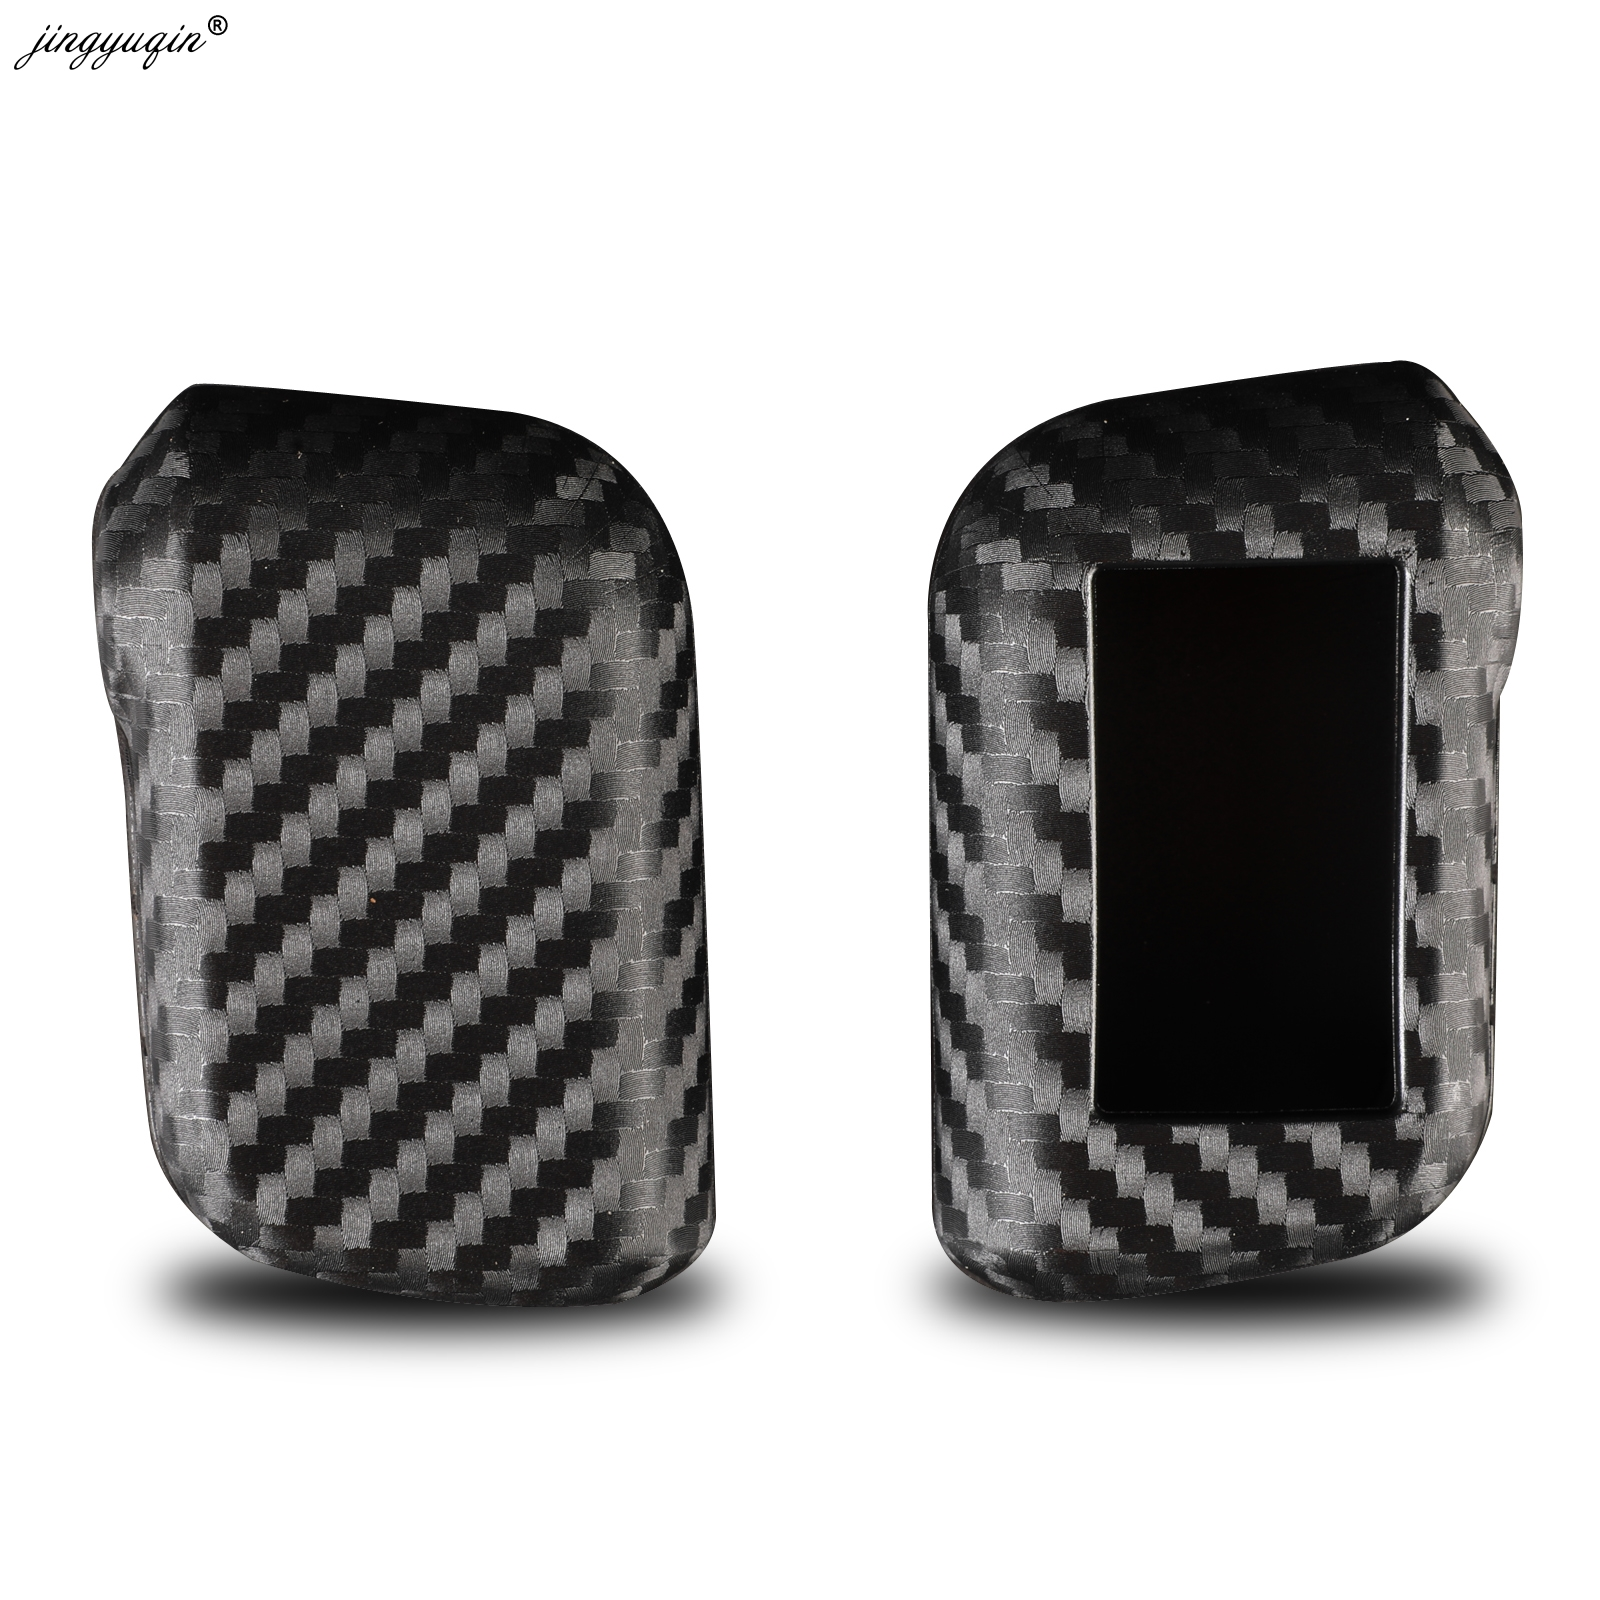 Jingyuqin New Carbon Silicone Case For Starline A93 A63 A96 Car 2 Way Alarm Remote Sensor Control LCD Keychain Cover Car Styling